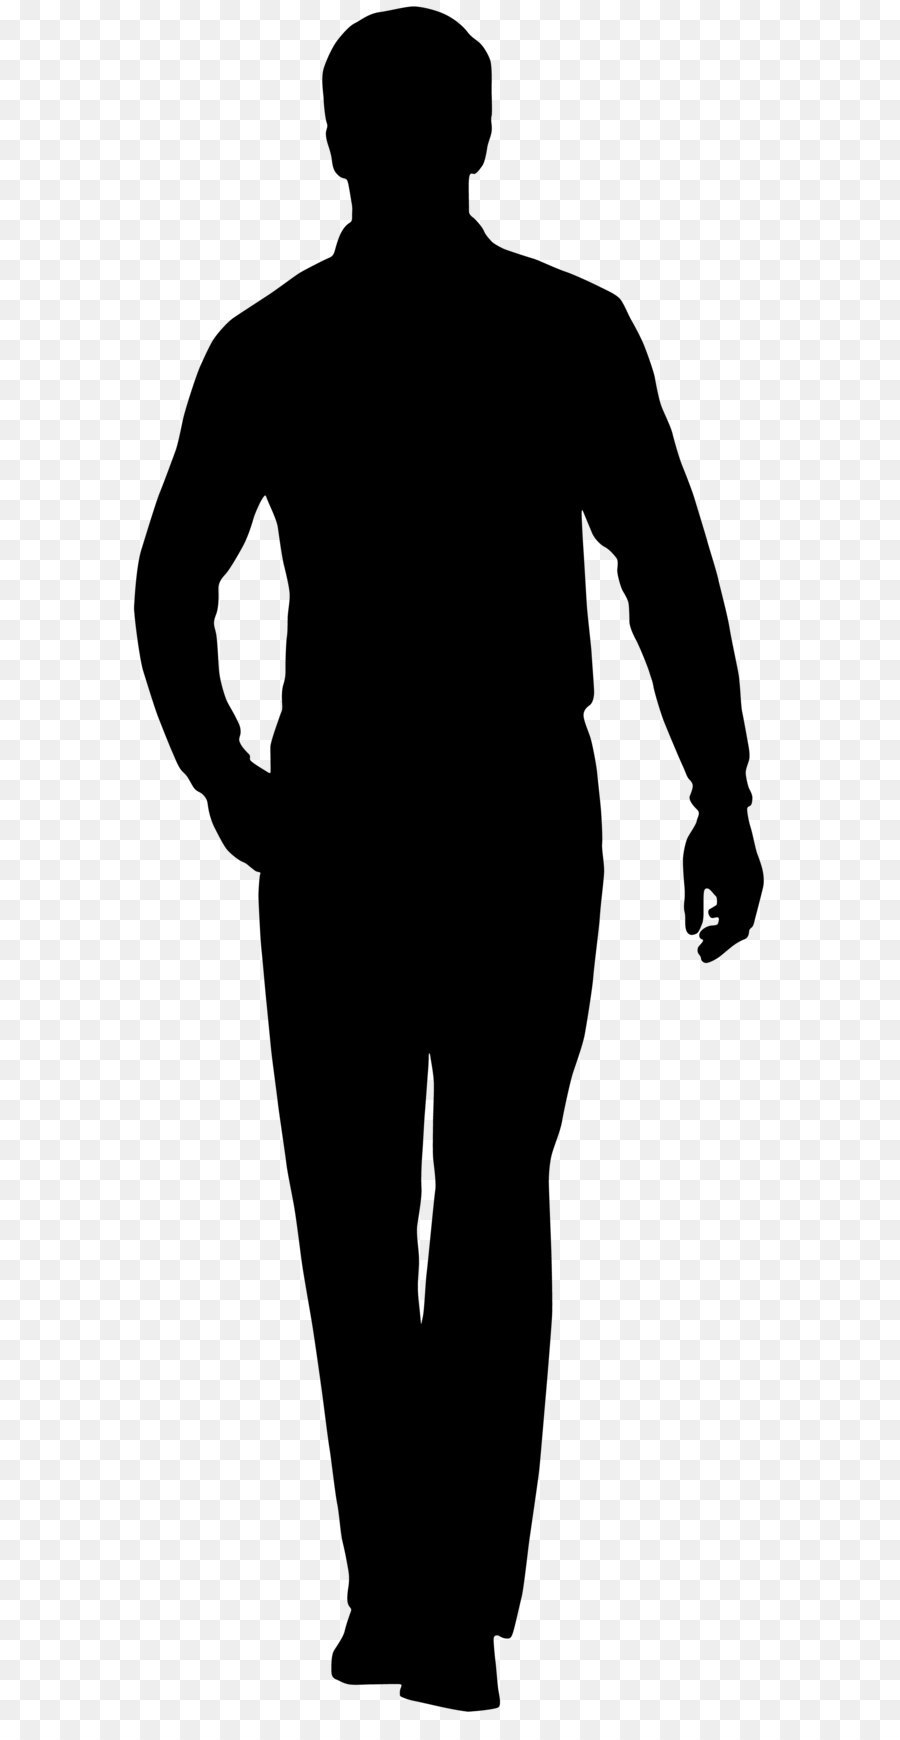 Male clipart png image freeuse stock Man Cartoon png download - 3019*8000 - Free Transparent ... image freeuse stock